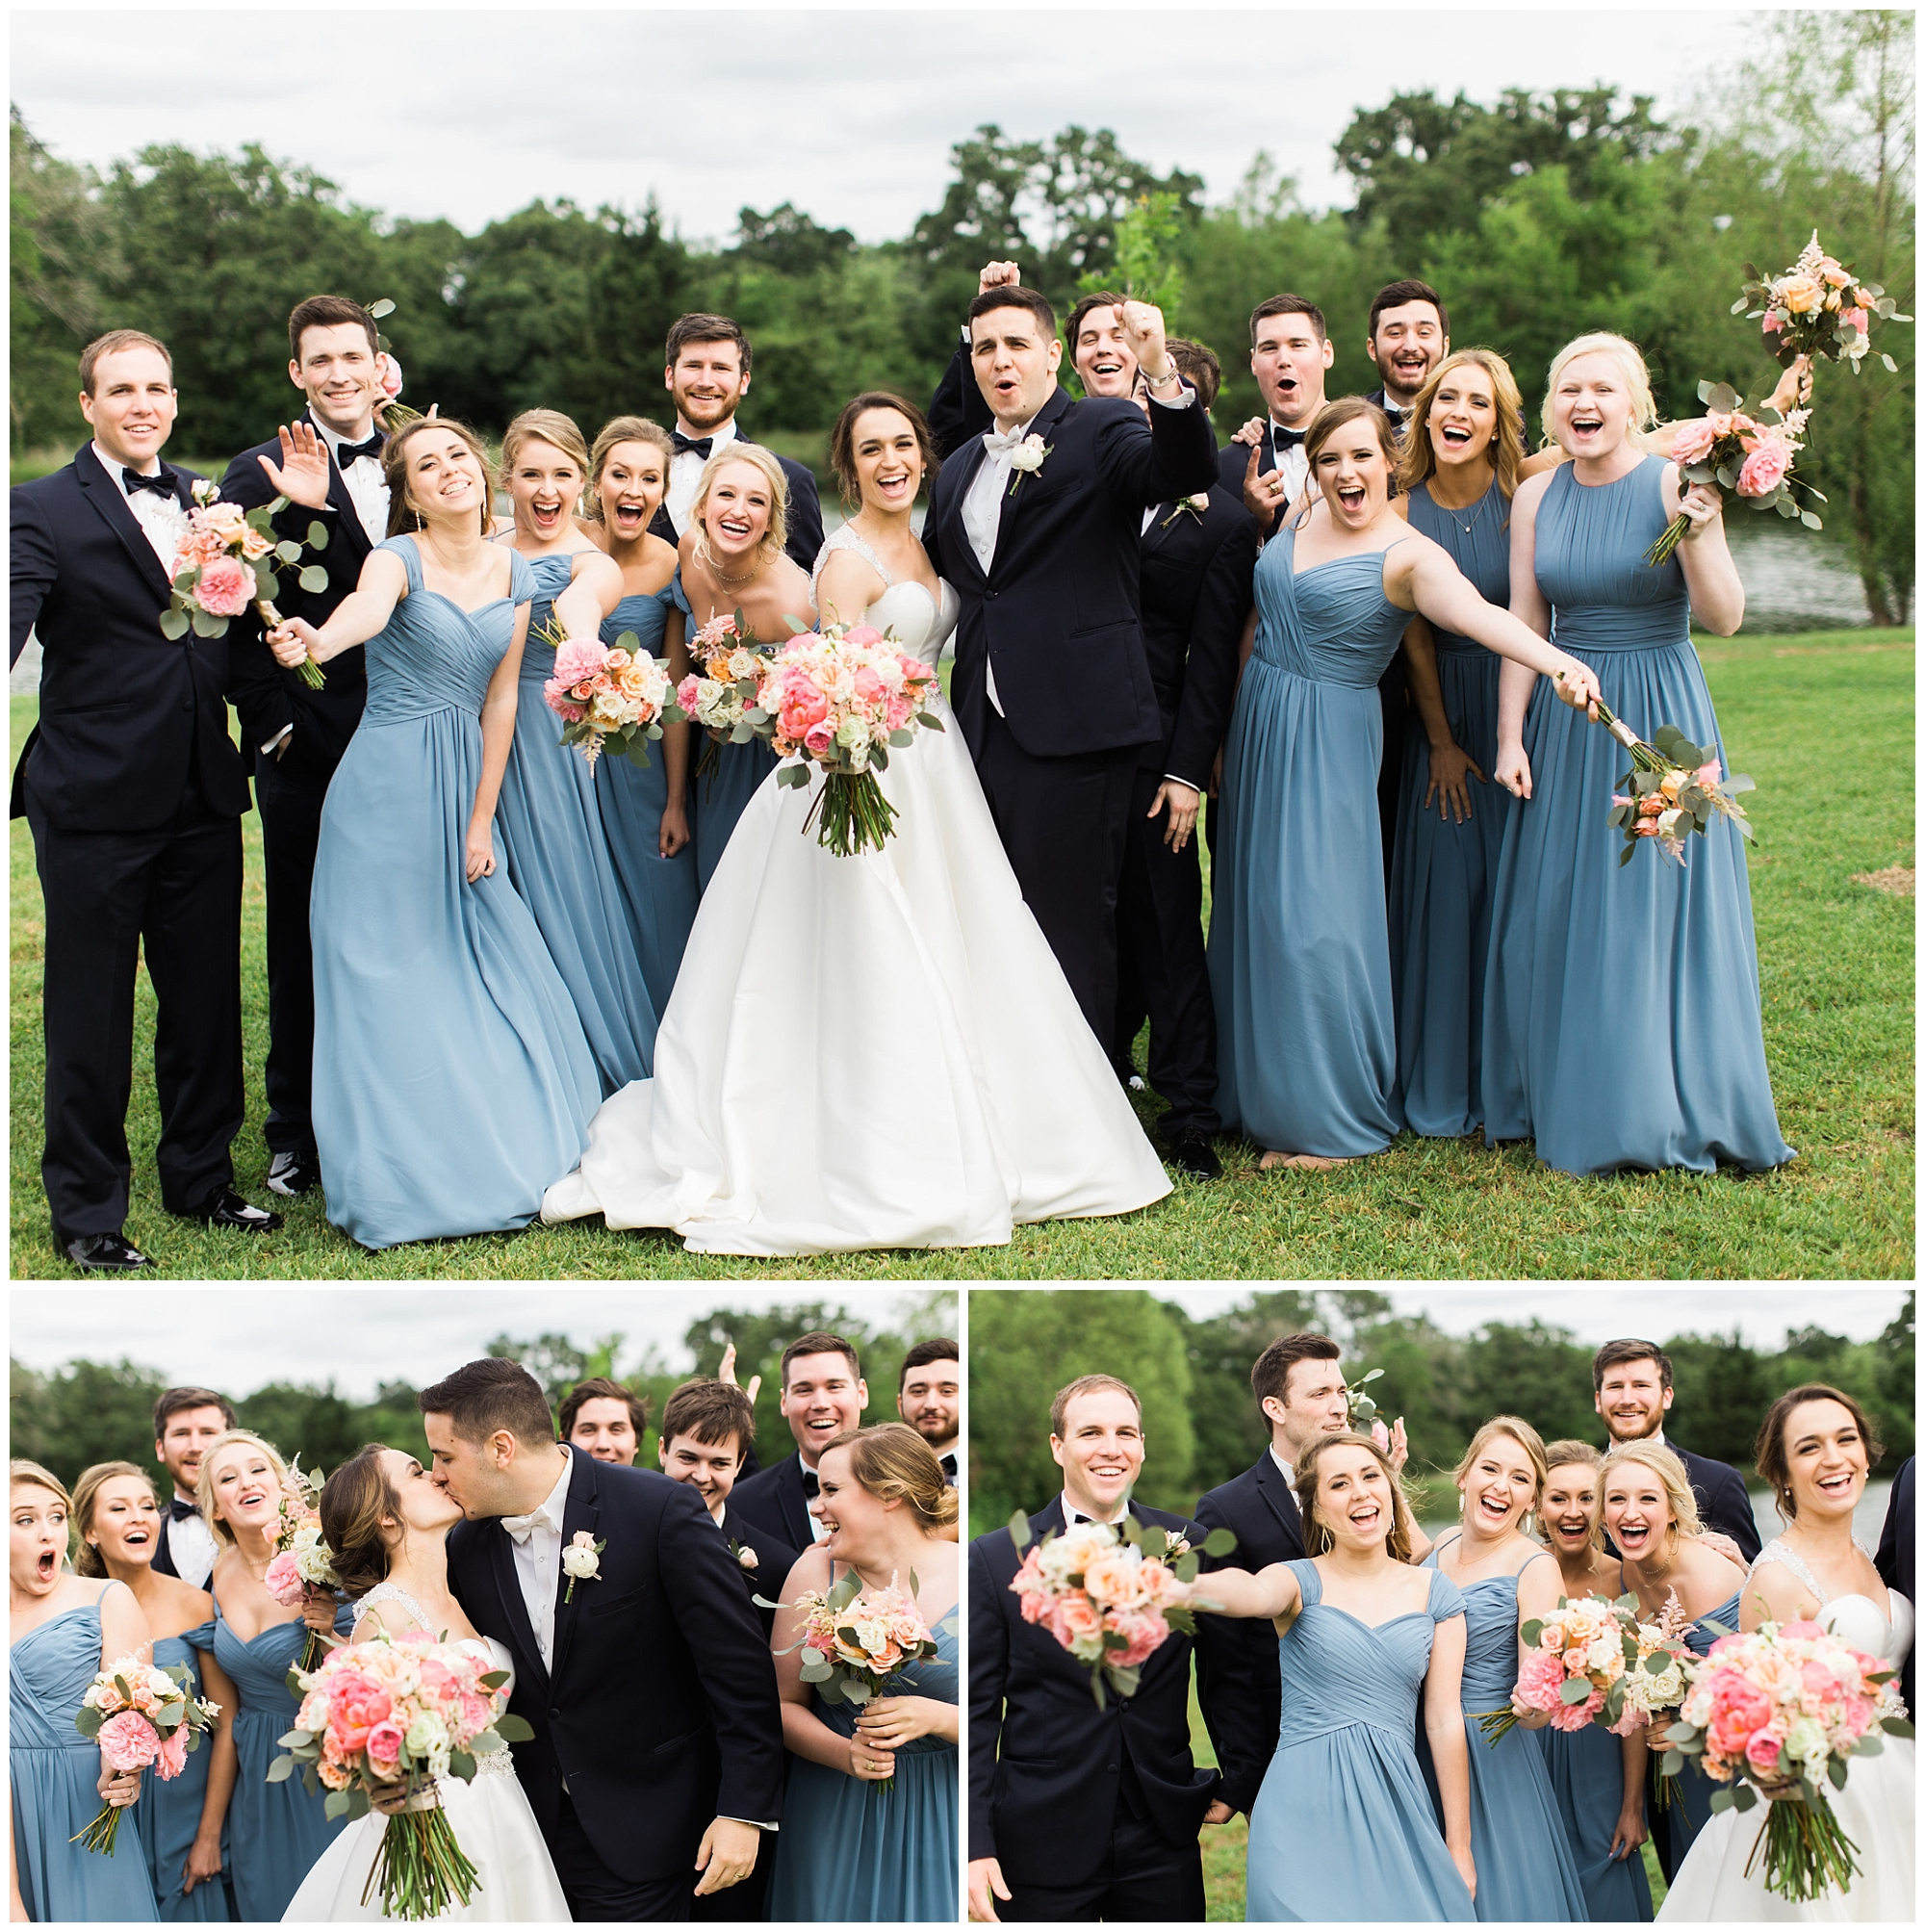 Brownstone_Reserve_Wedding_Kristina_Ross_Photography_0023.jpg